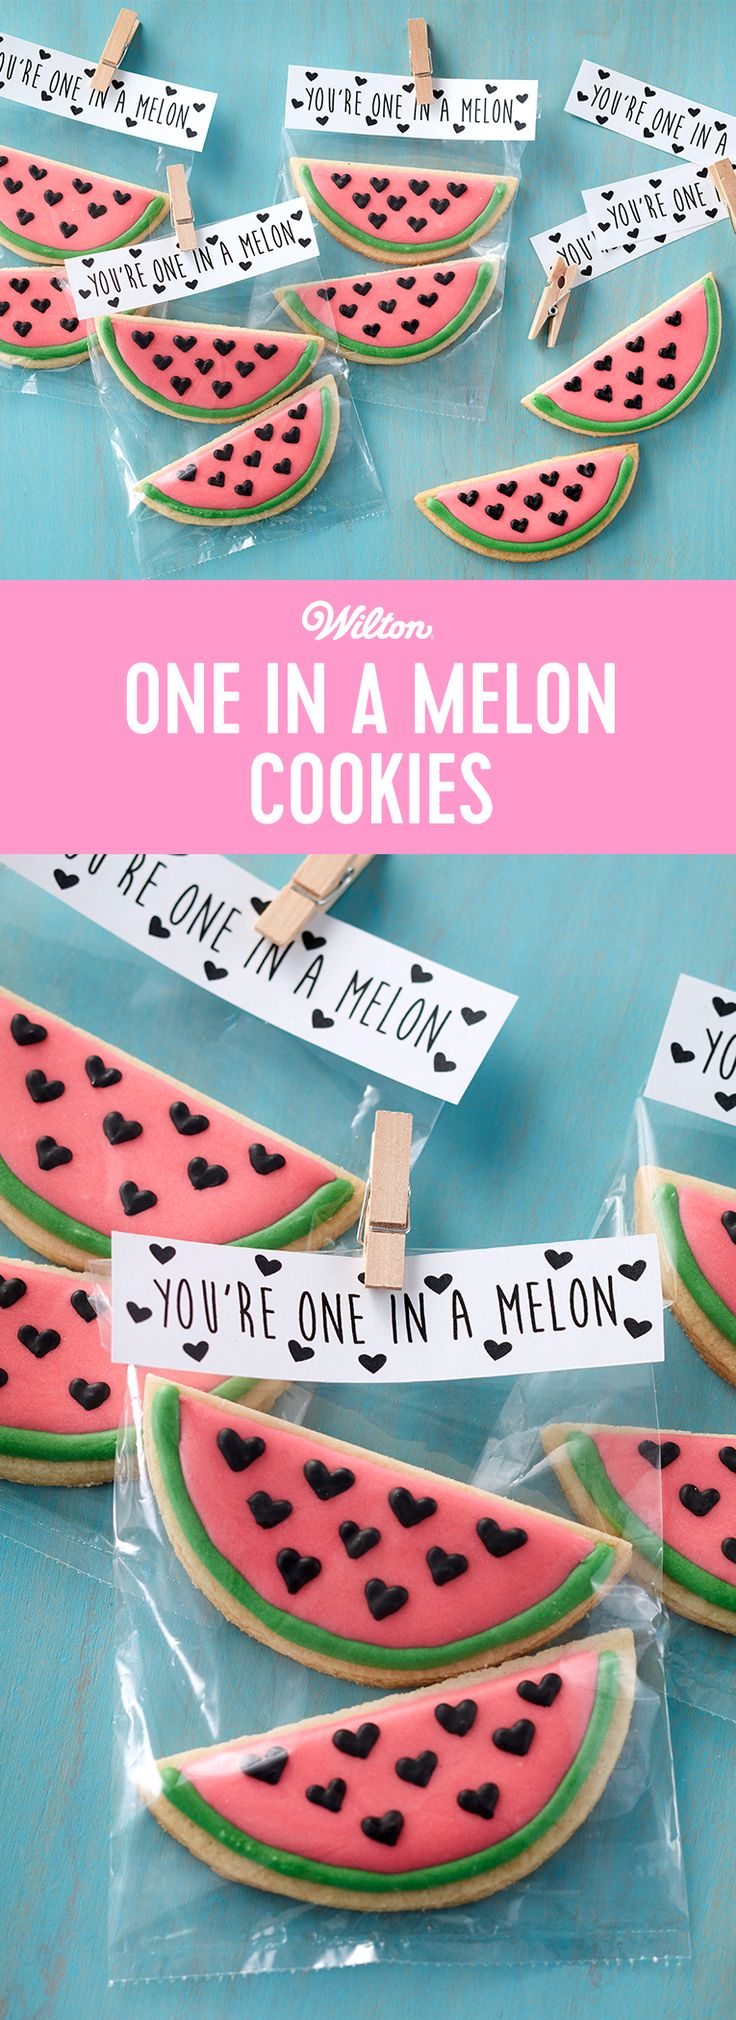 """Tell someone they're """"One in a Melon"""" with these cute watermelon cookies. Fun to give to friends and co-workers, these tasty cookies are a fun way to show someone how much you care. Use royal icing to decorate your cookies so they won't get damaged if you package them in a treat bag or box. #wiltoncakes #cookies #valentines #valentinesday #valentinesdaydessert #desserts #royalicing #watermelon"""